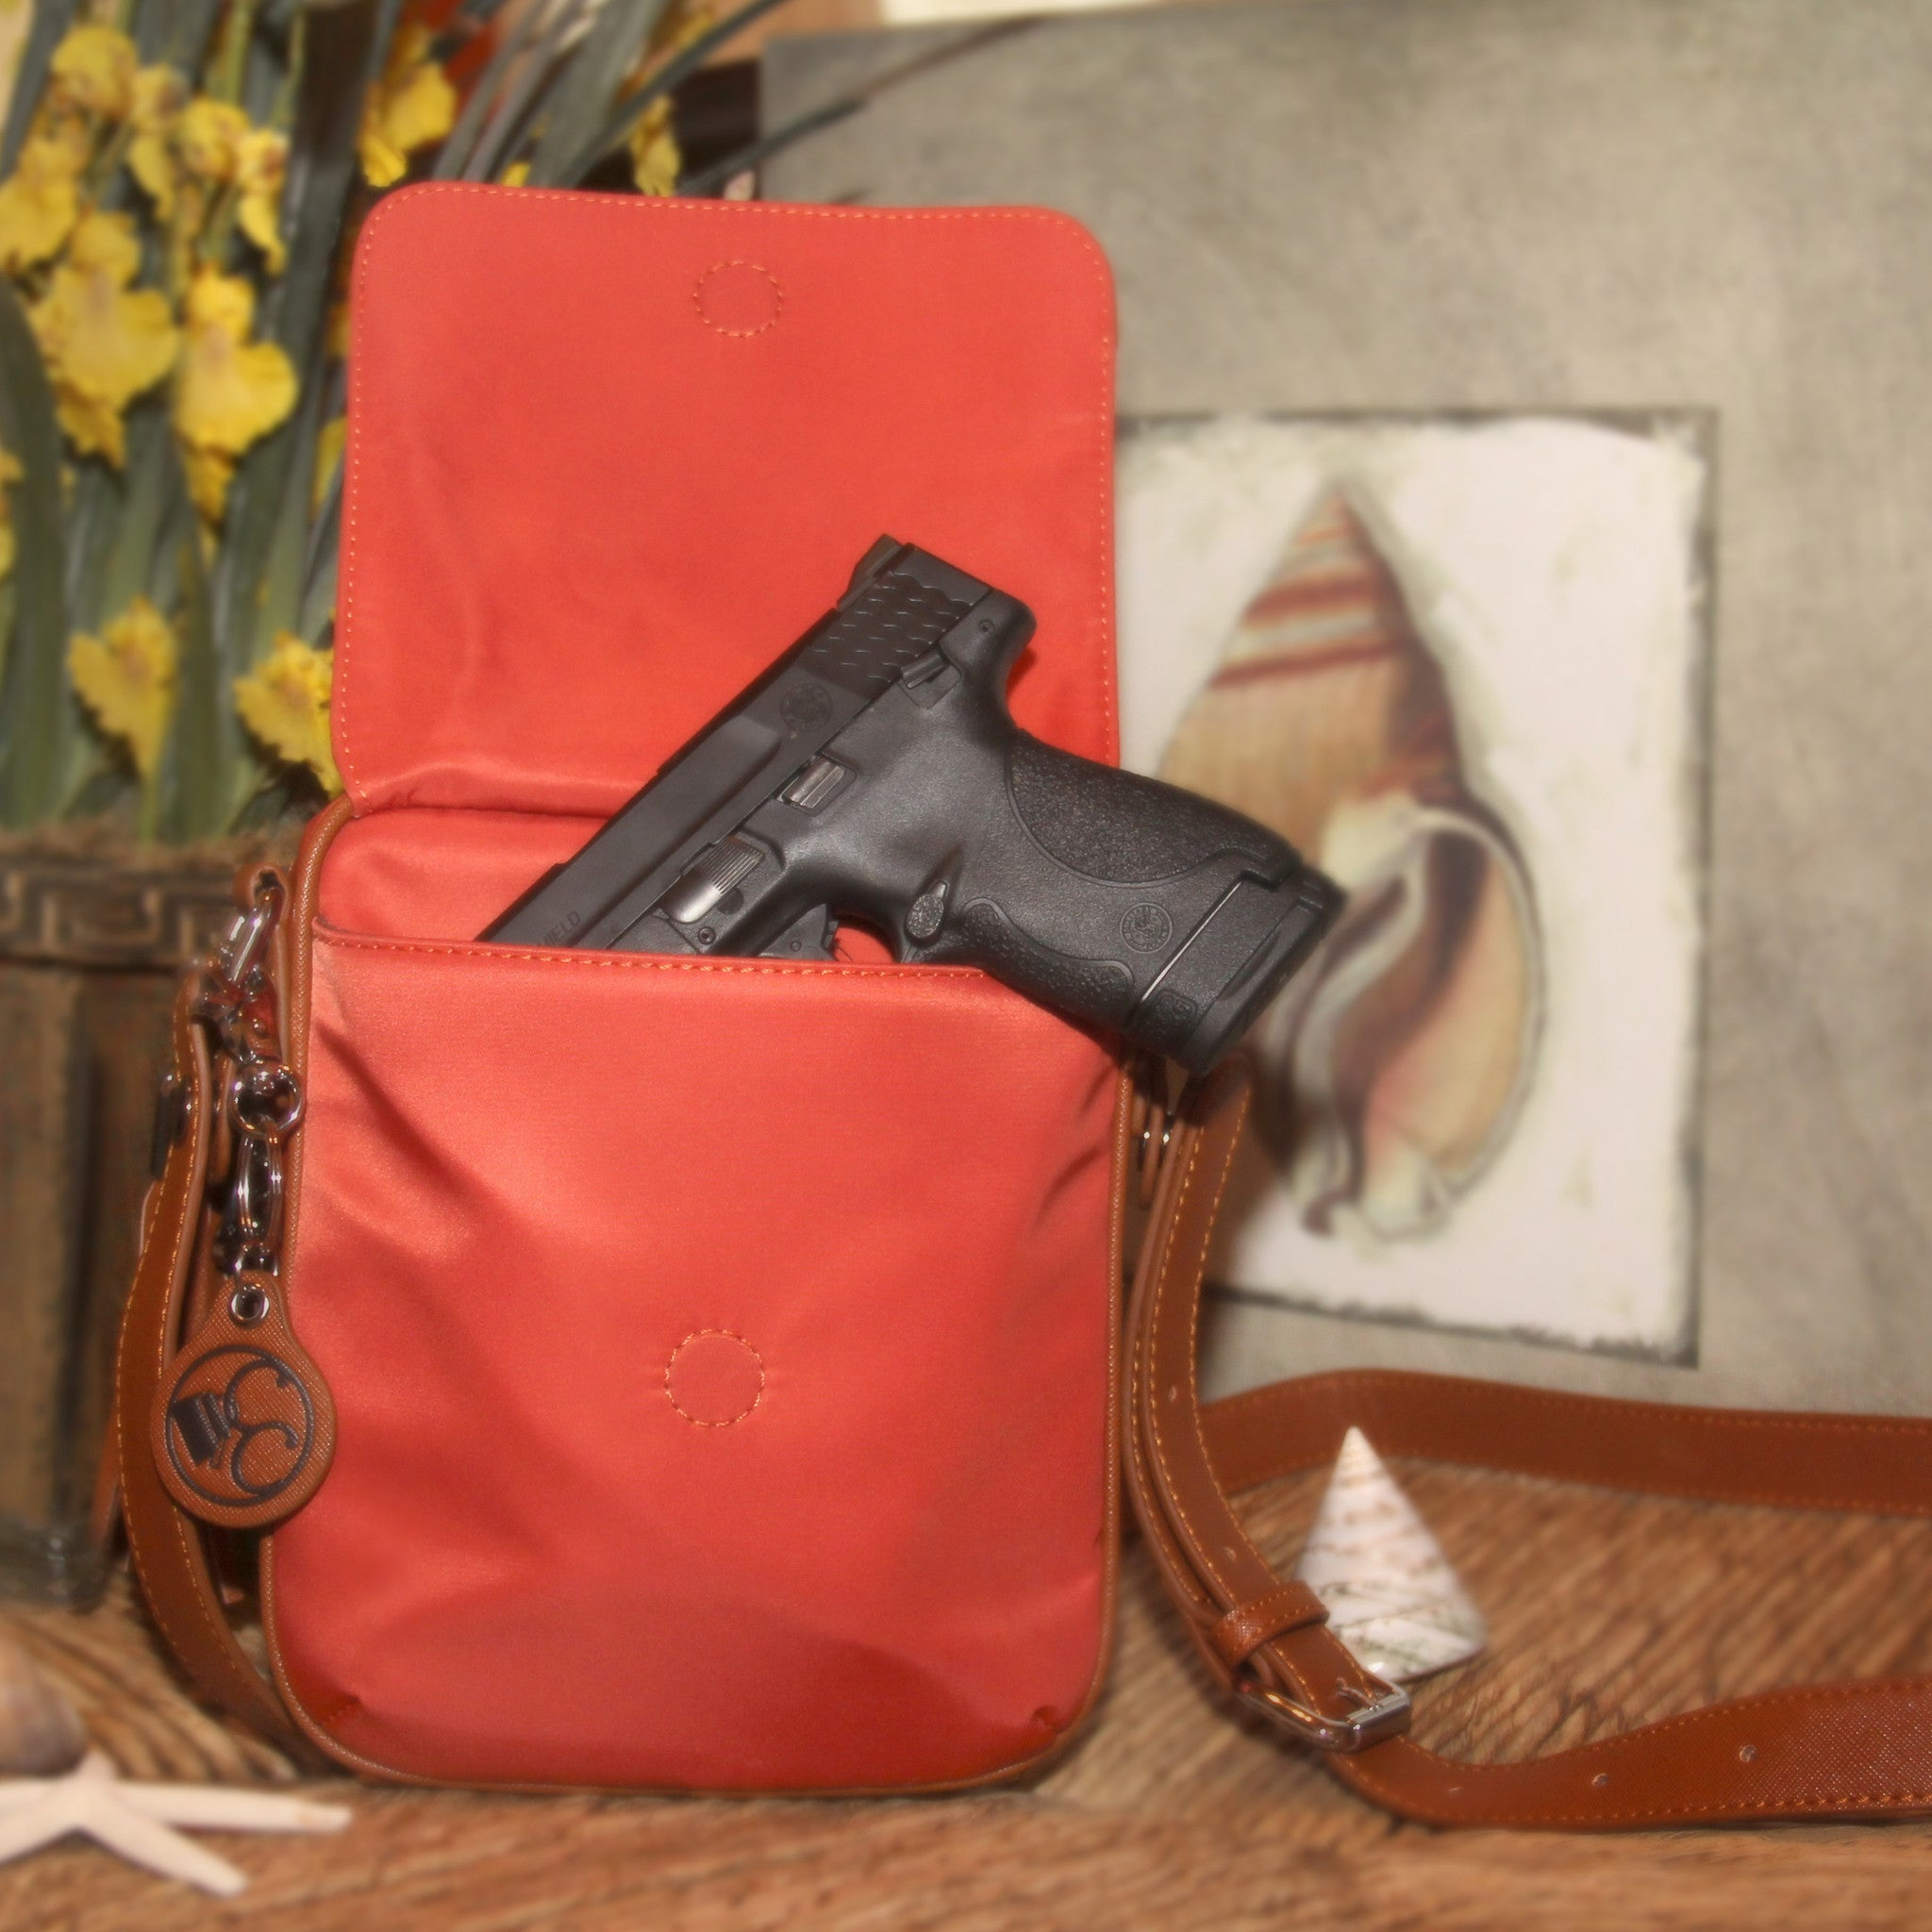 Concealed Carry Ambidextrous Compact Crossbody Purse w/ Holster